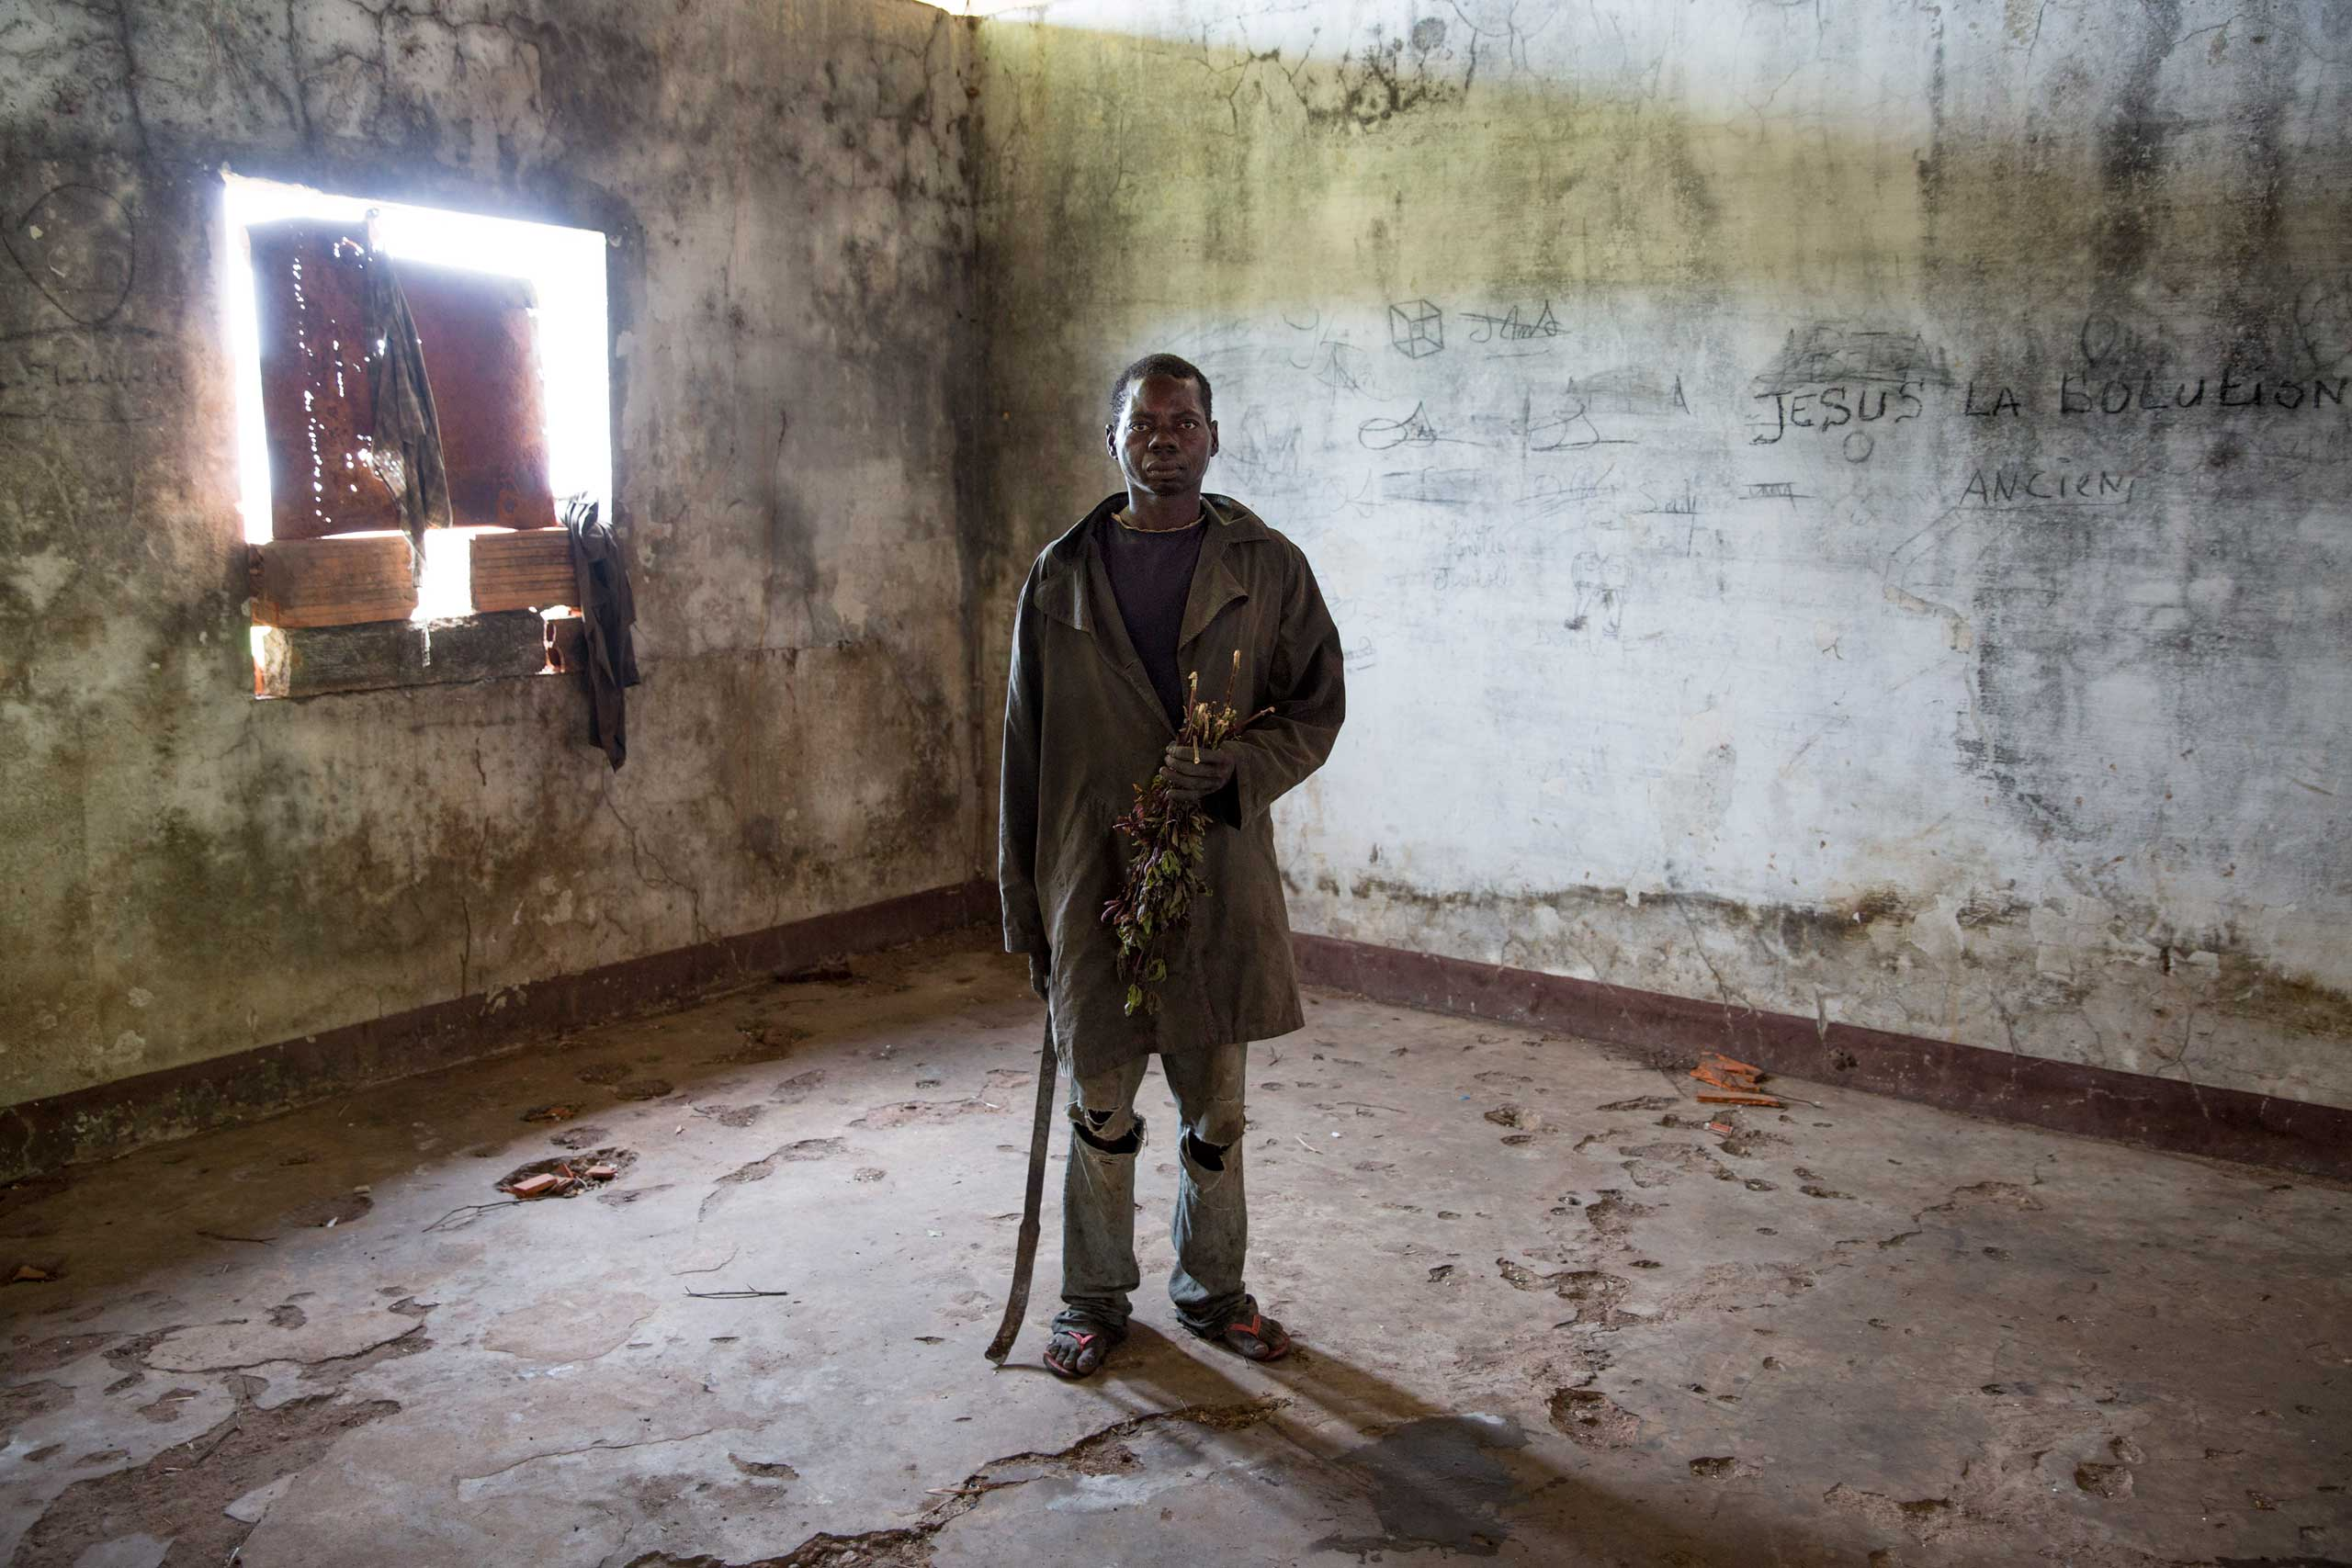 Feb. 2, 2014: A man poses in former Emperor Jean-Bédel Bokassa's compound near the village of Pissa. He is one of the many Christians there, originally recruited by Séléka to become soldiers, but later abandoned by their leader. No food is available so they hunt rats to eat, fearing to leave as they could be considered Séléka collaborators.